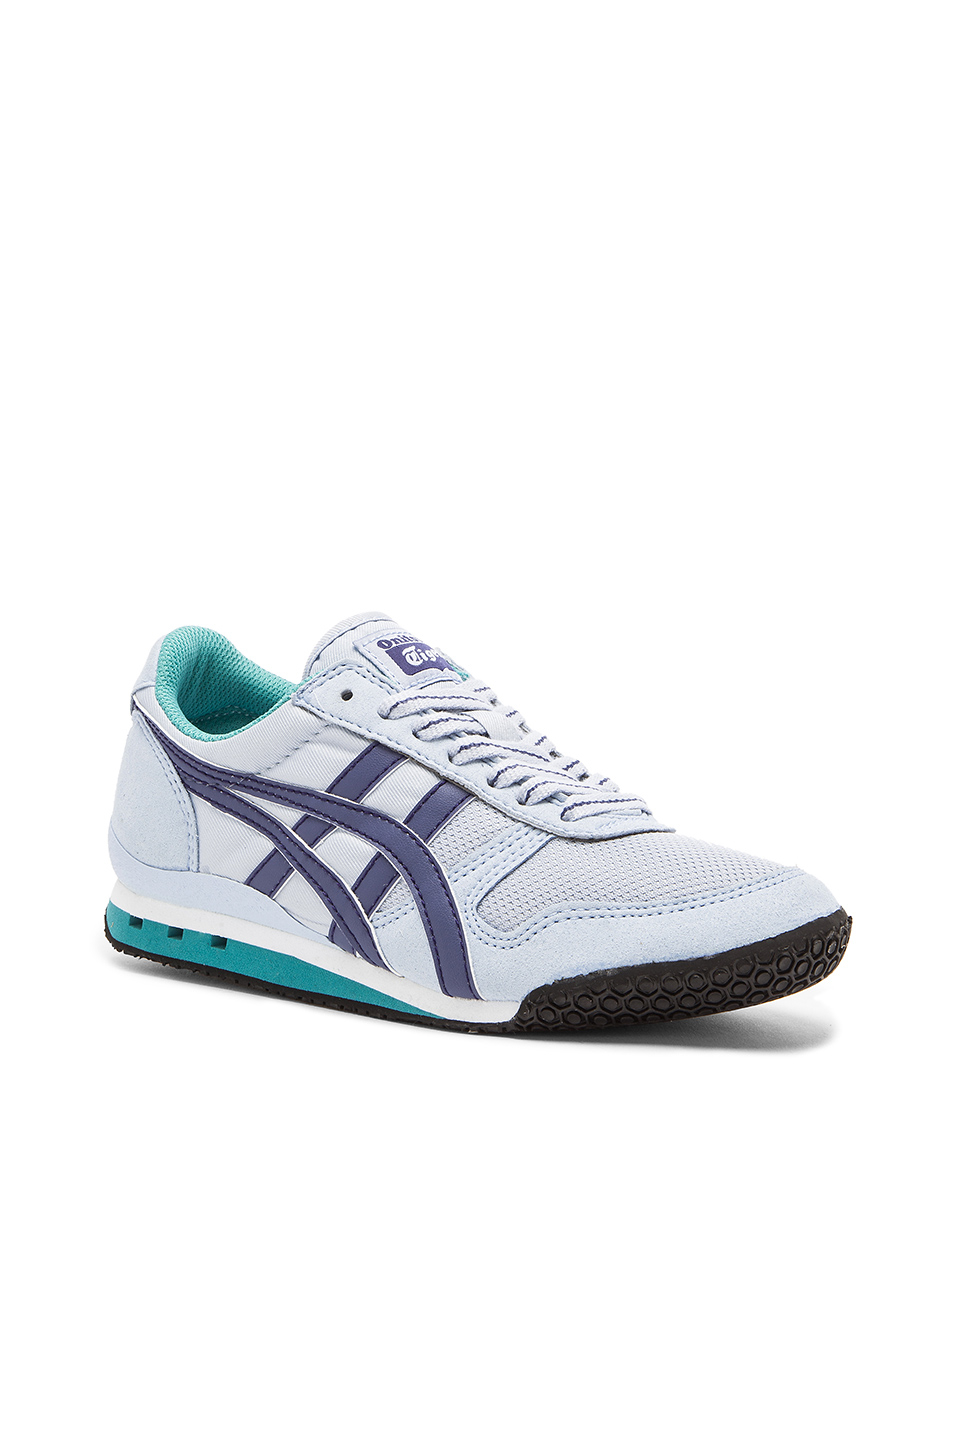 reputable site 51454 e287d Onitsuka Tiger Ultimate 81 Womens - Best Picture Tiger In ...